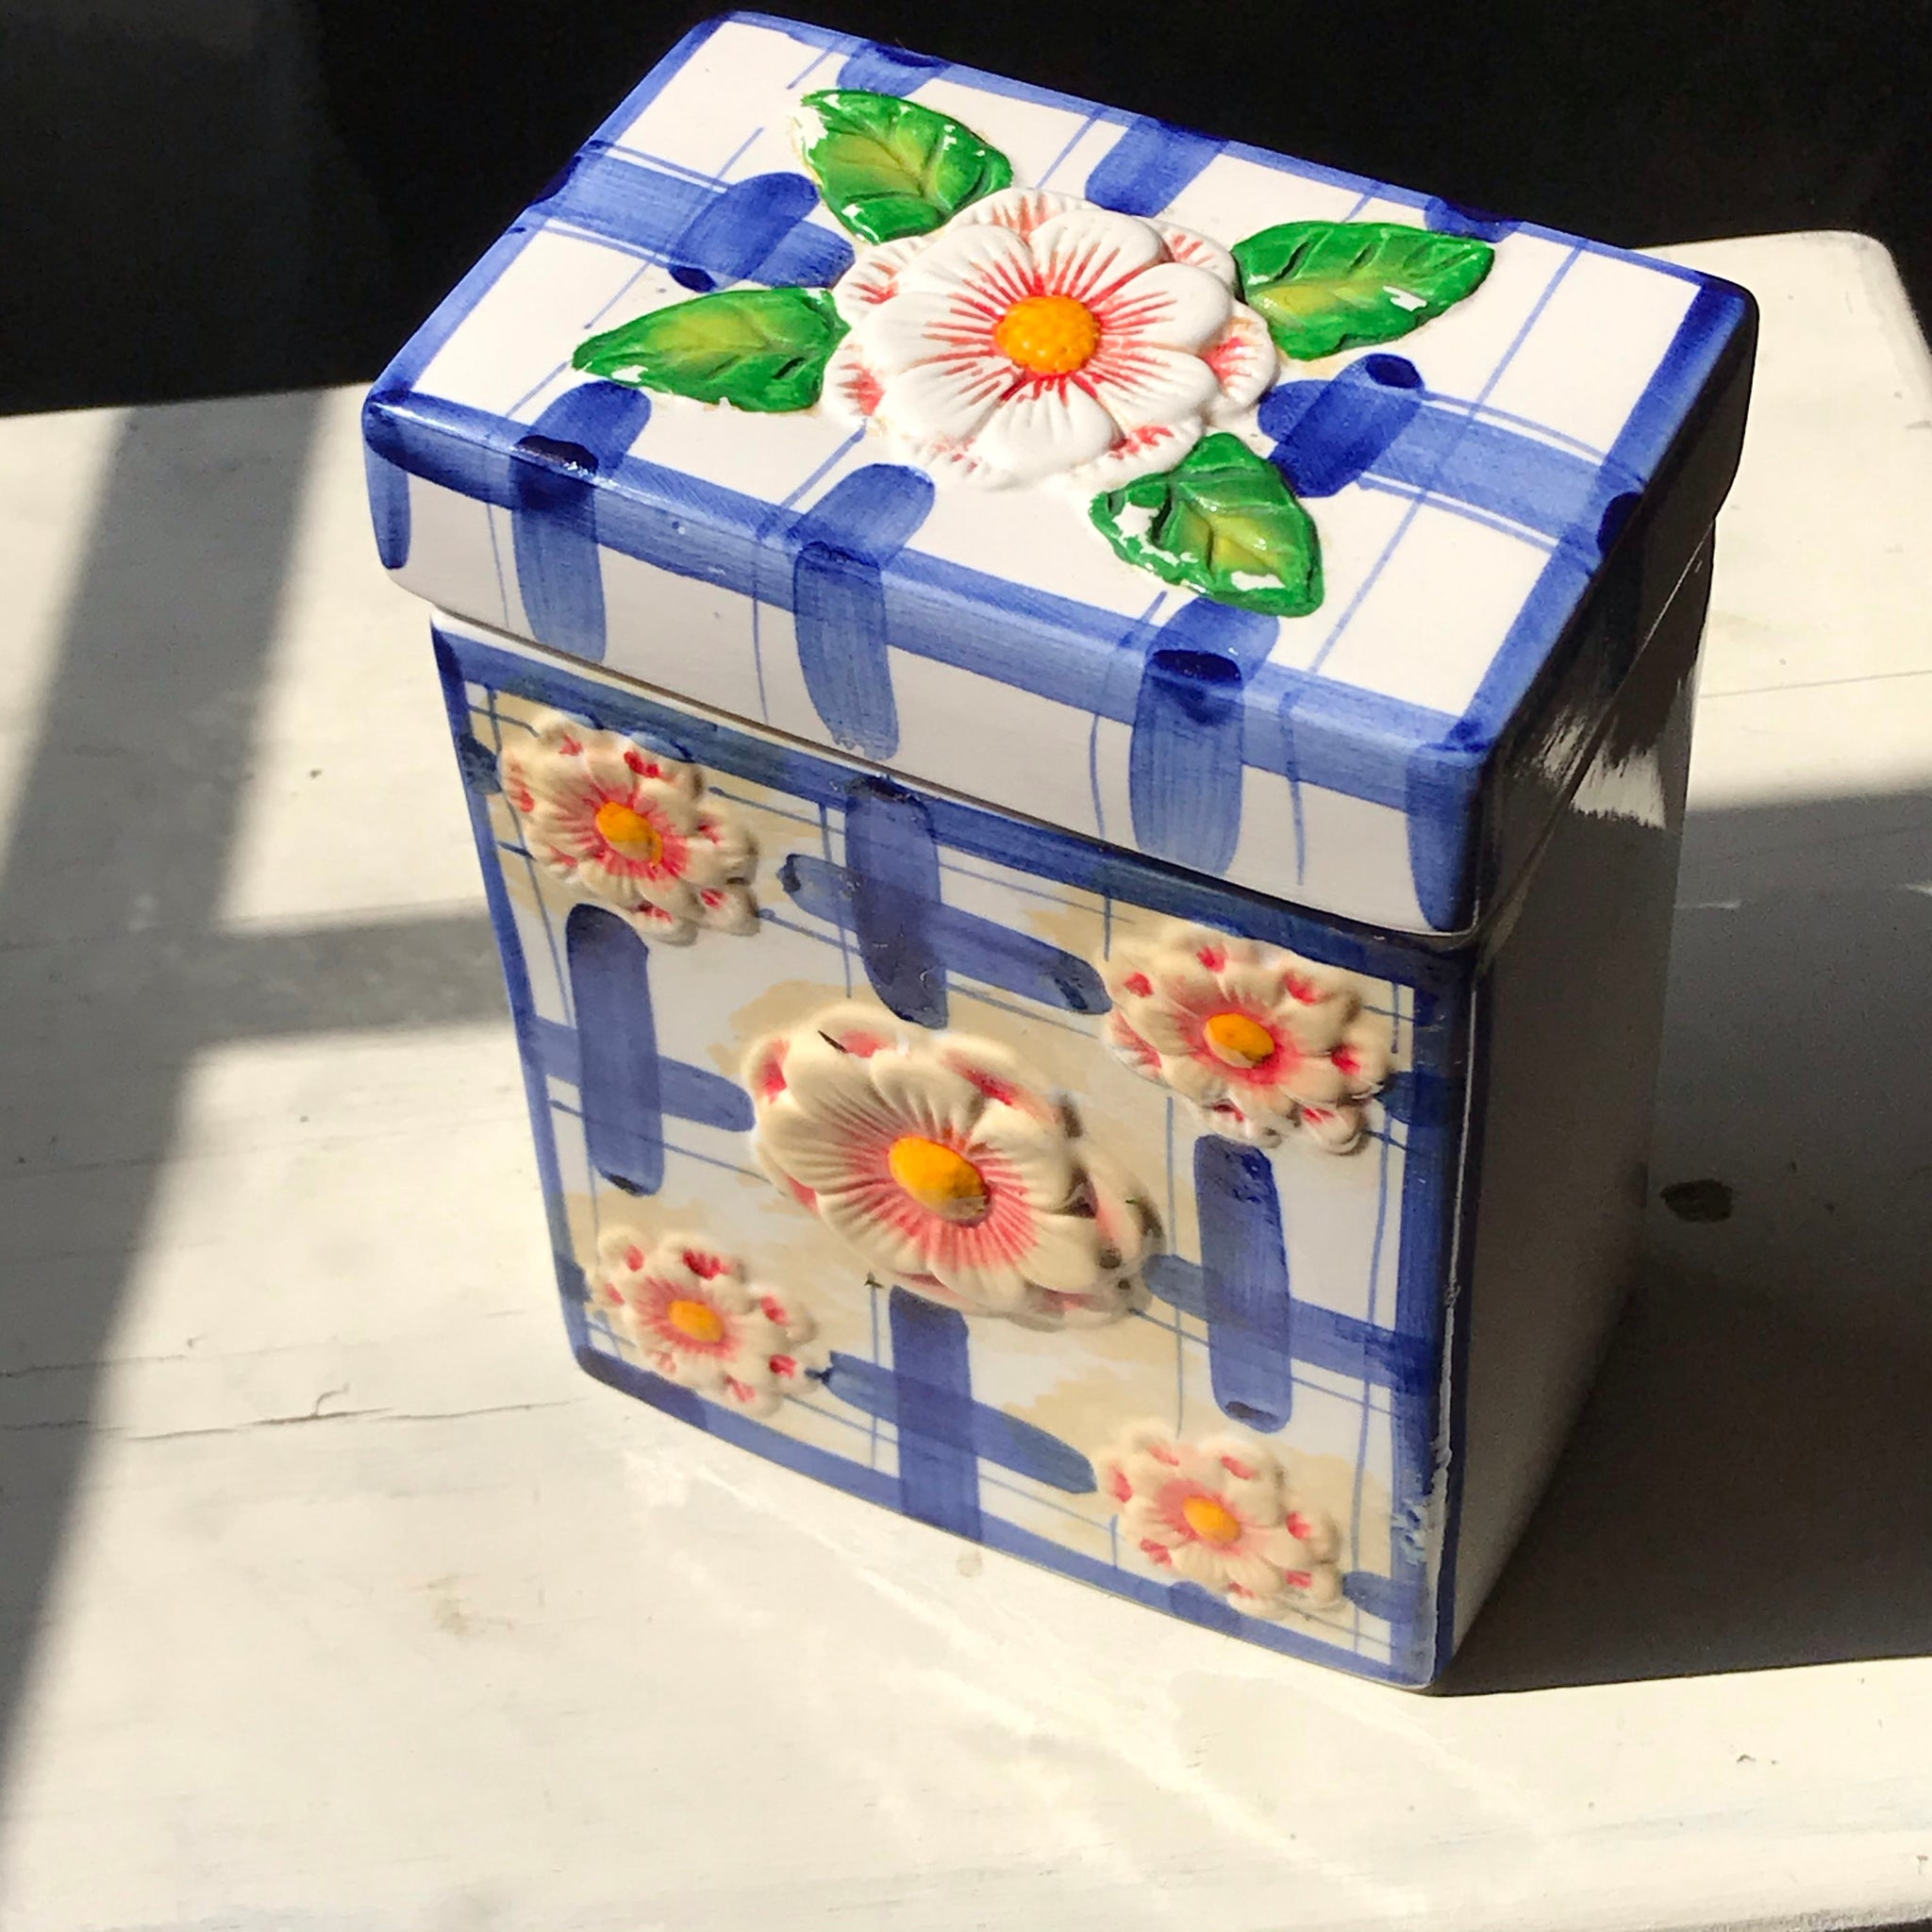 1990s Hand-Painted Ceramic Sugar Container